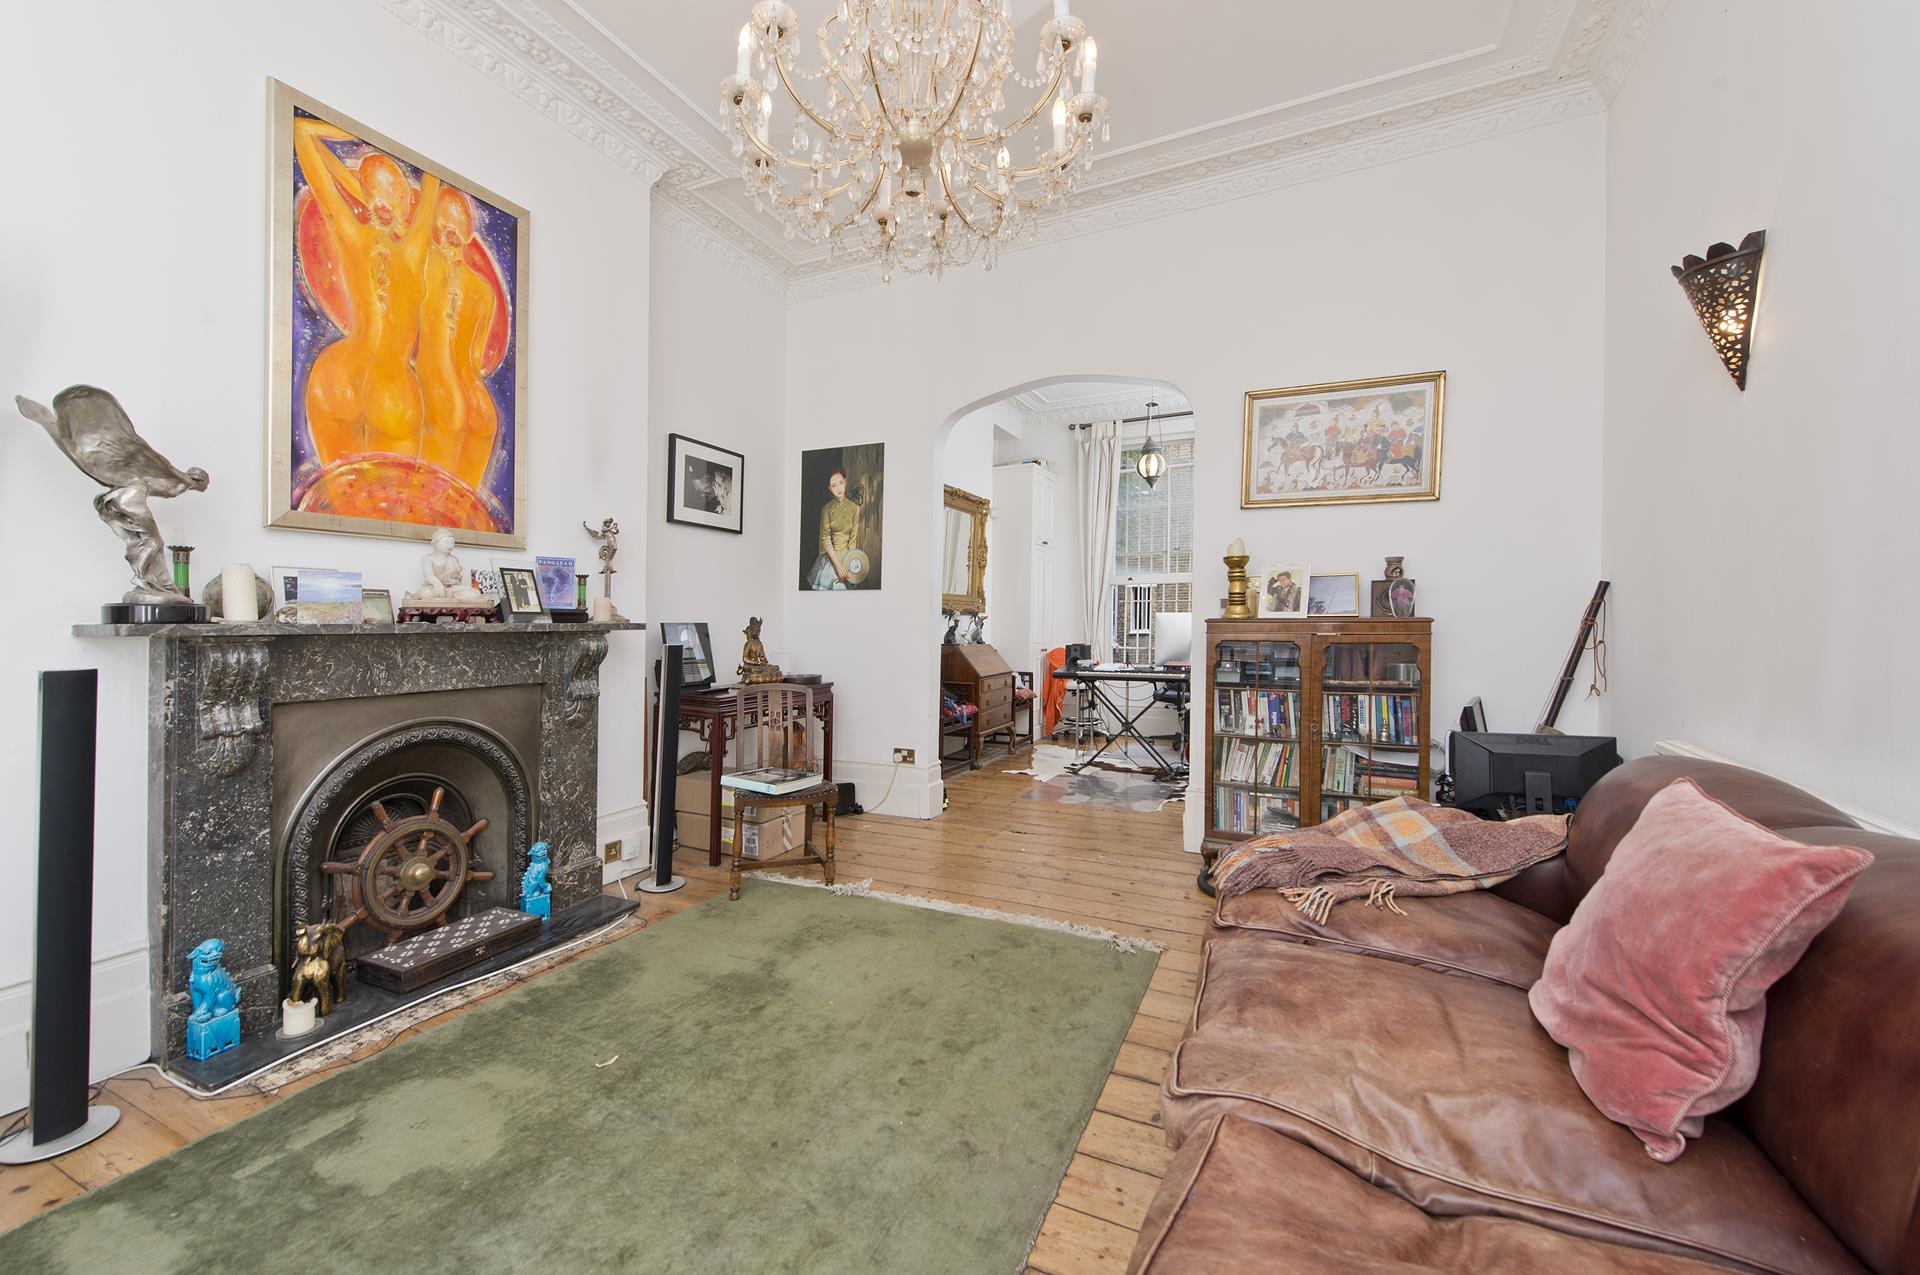 3 bedroom flat for sale in charleville road london w14 lawson